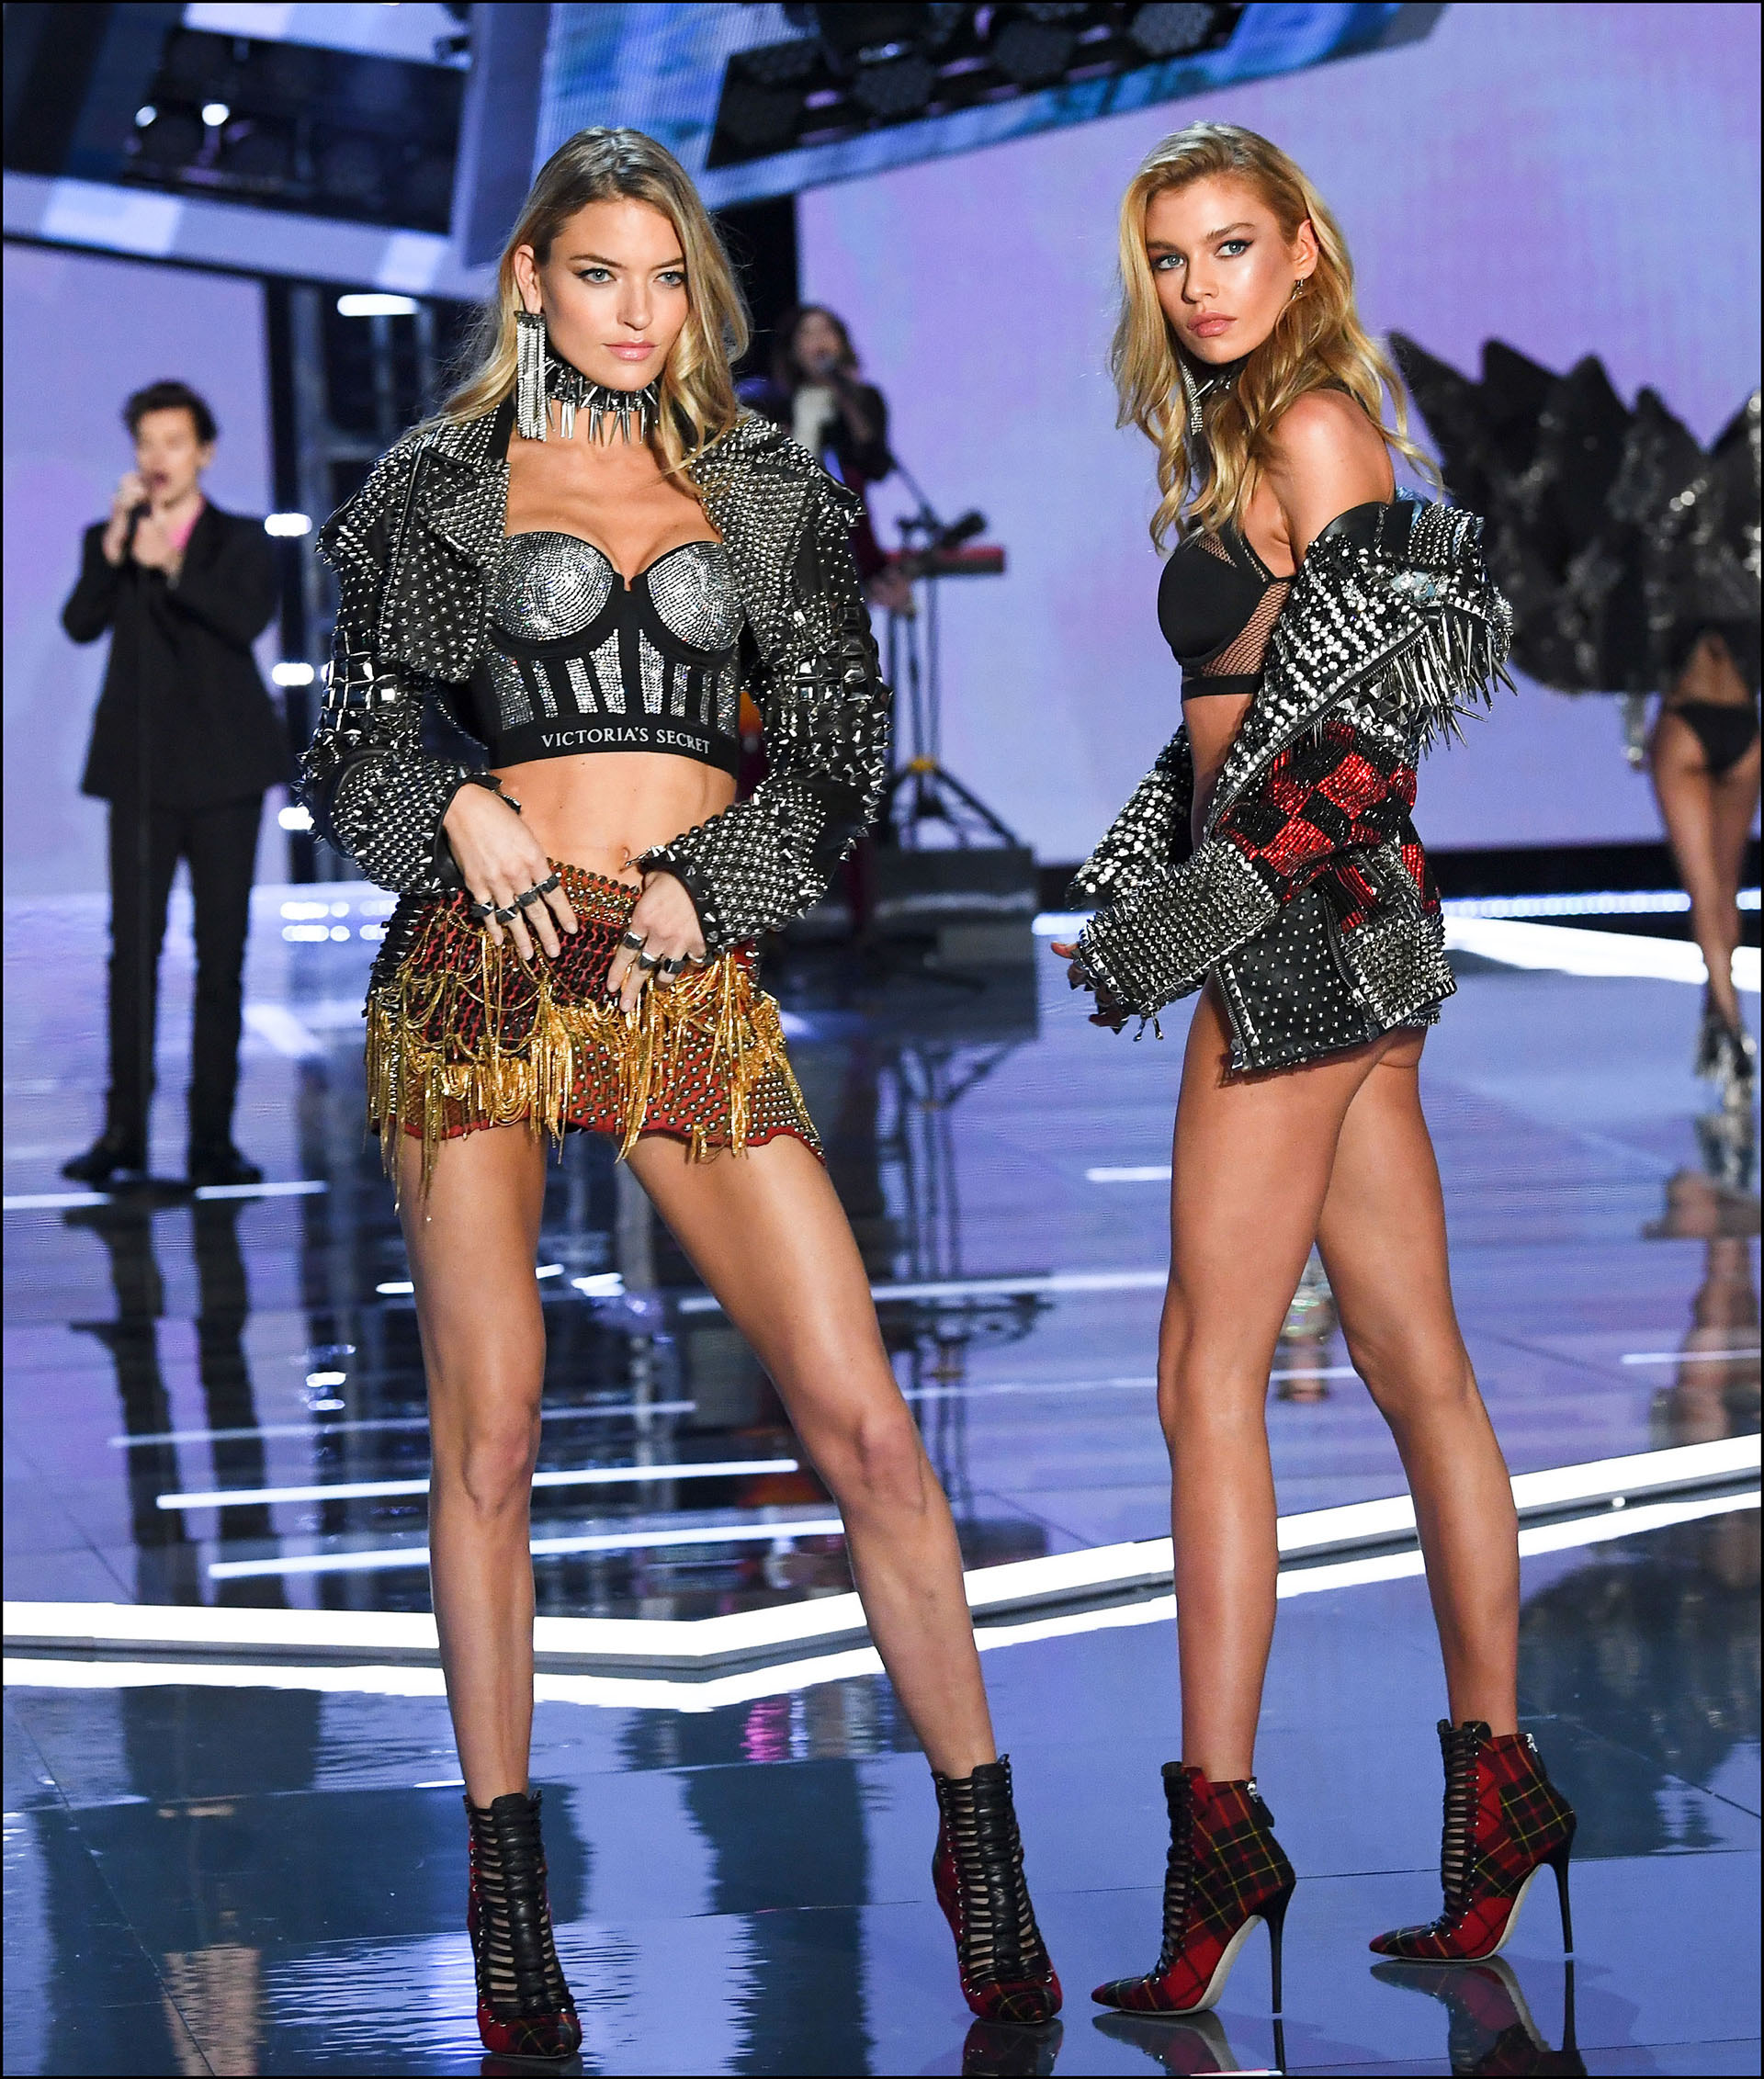 Martha Hunt and Stella Maxwell are seen on stage at the Victoria